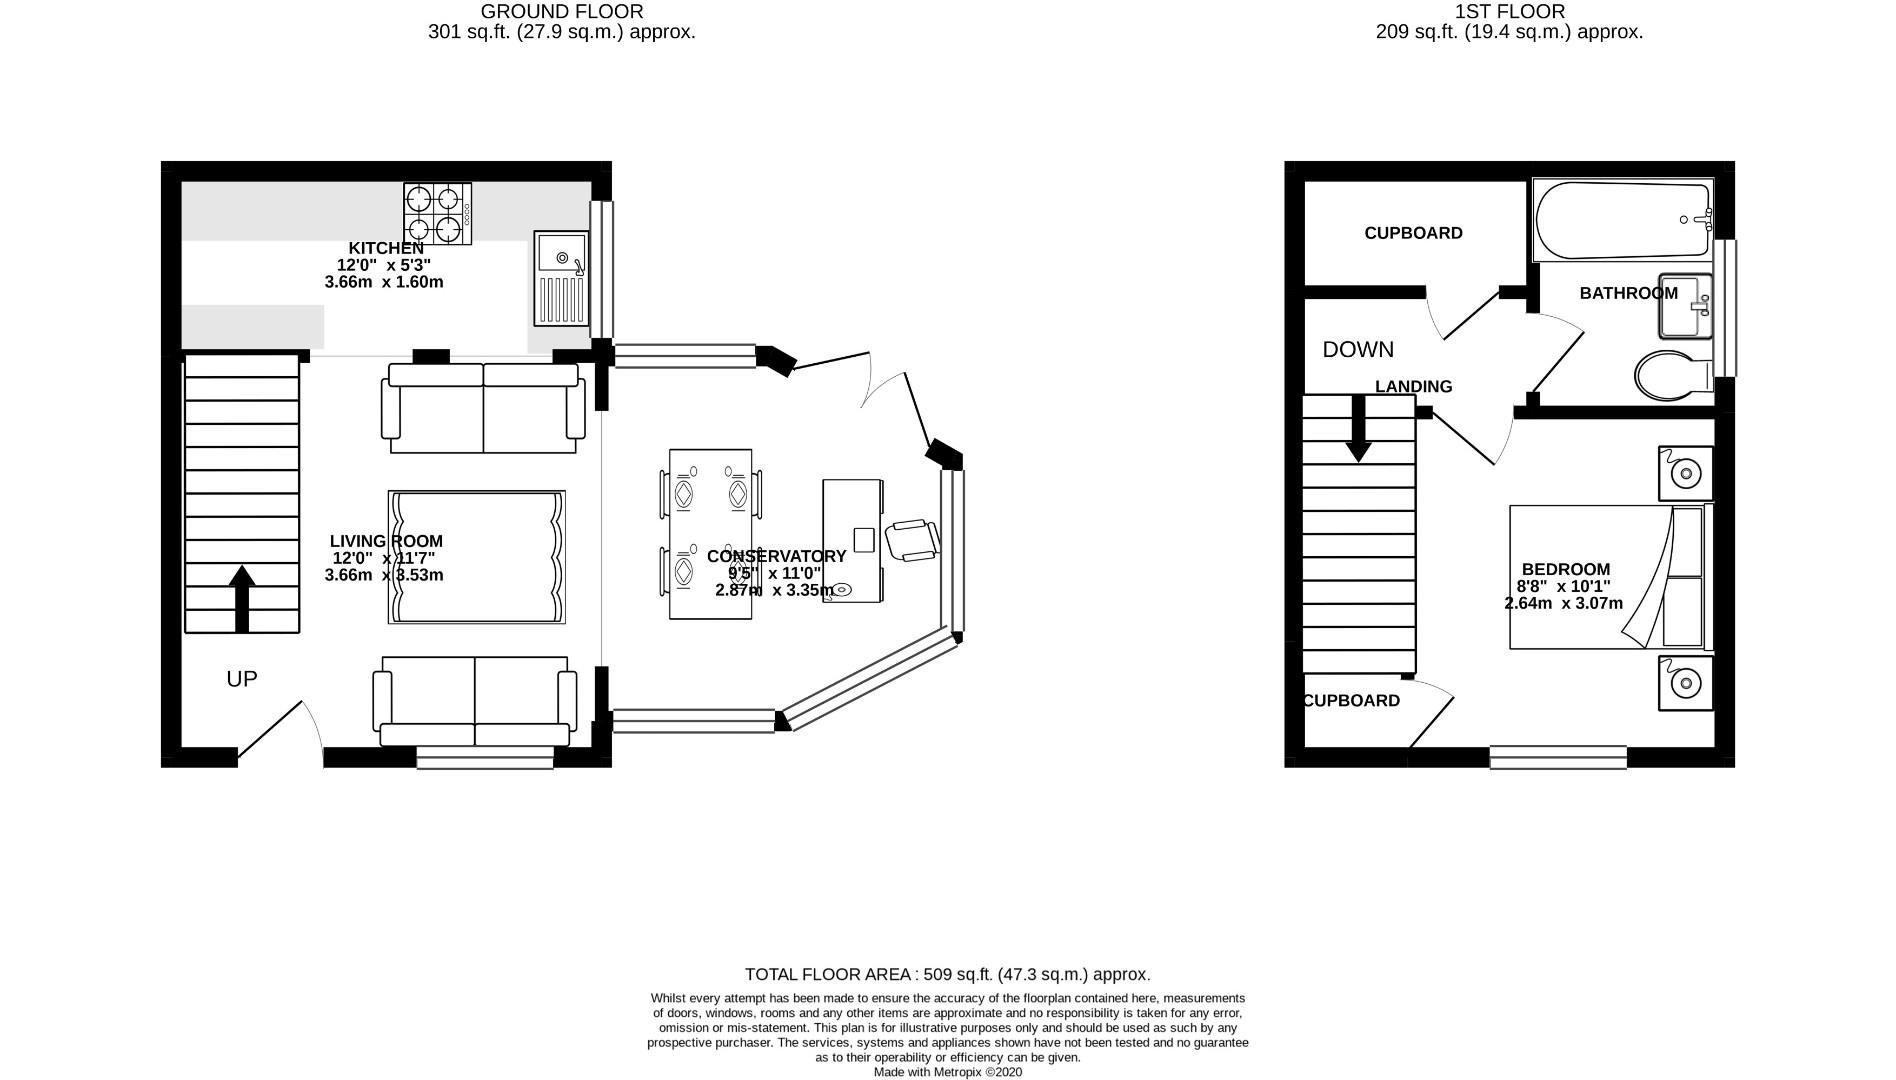 1 bed end of terrace for sale - Property Floorplan